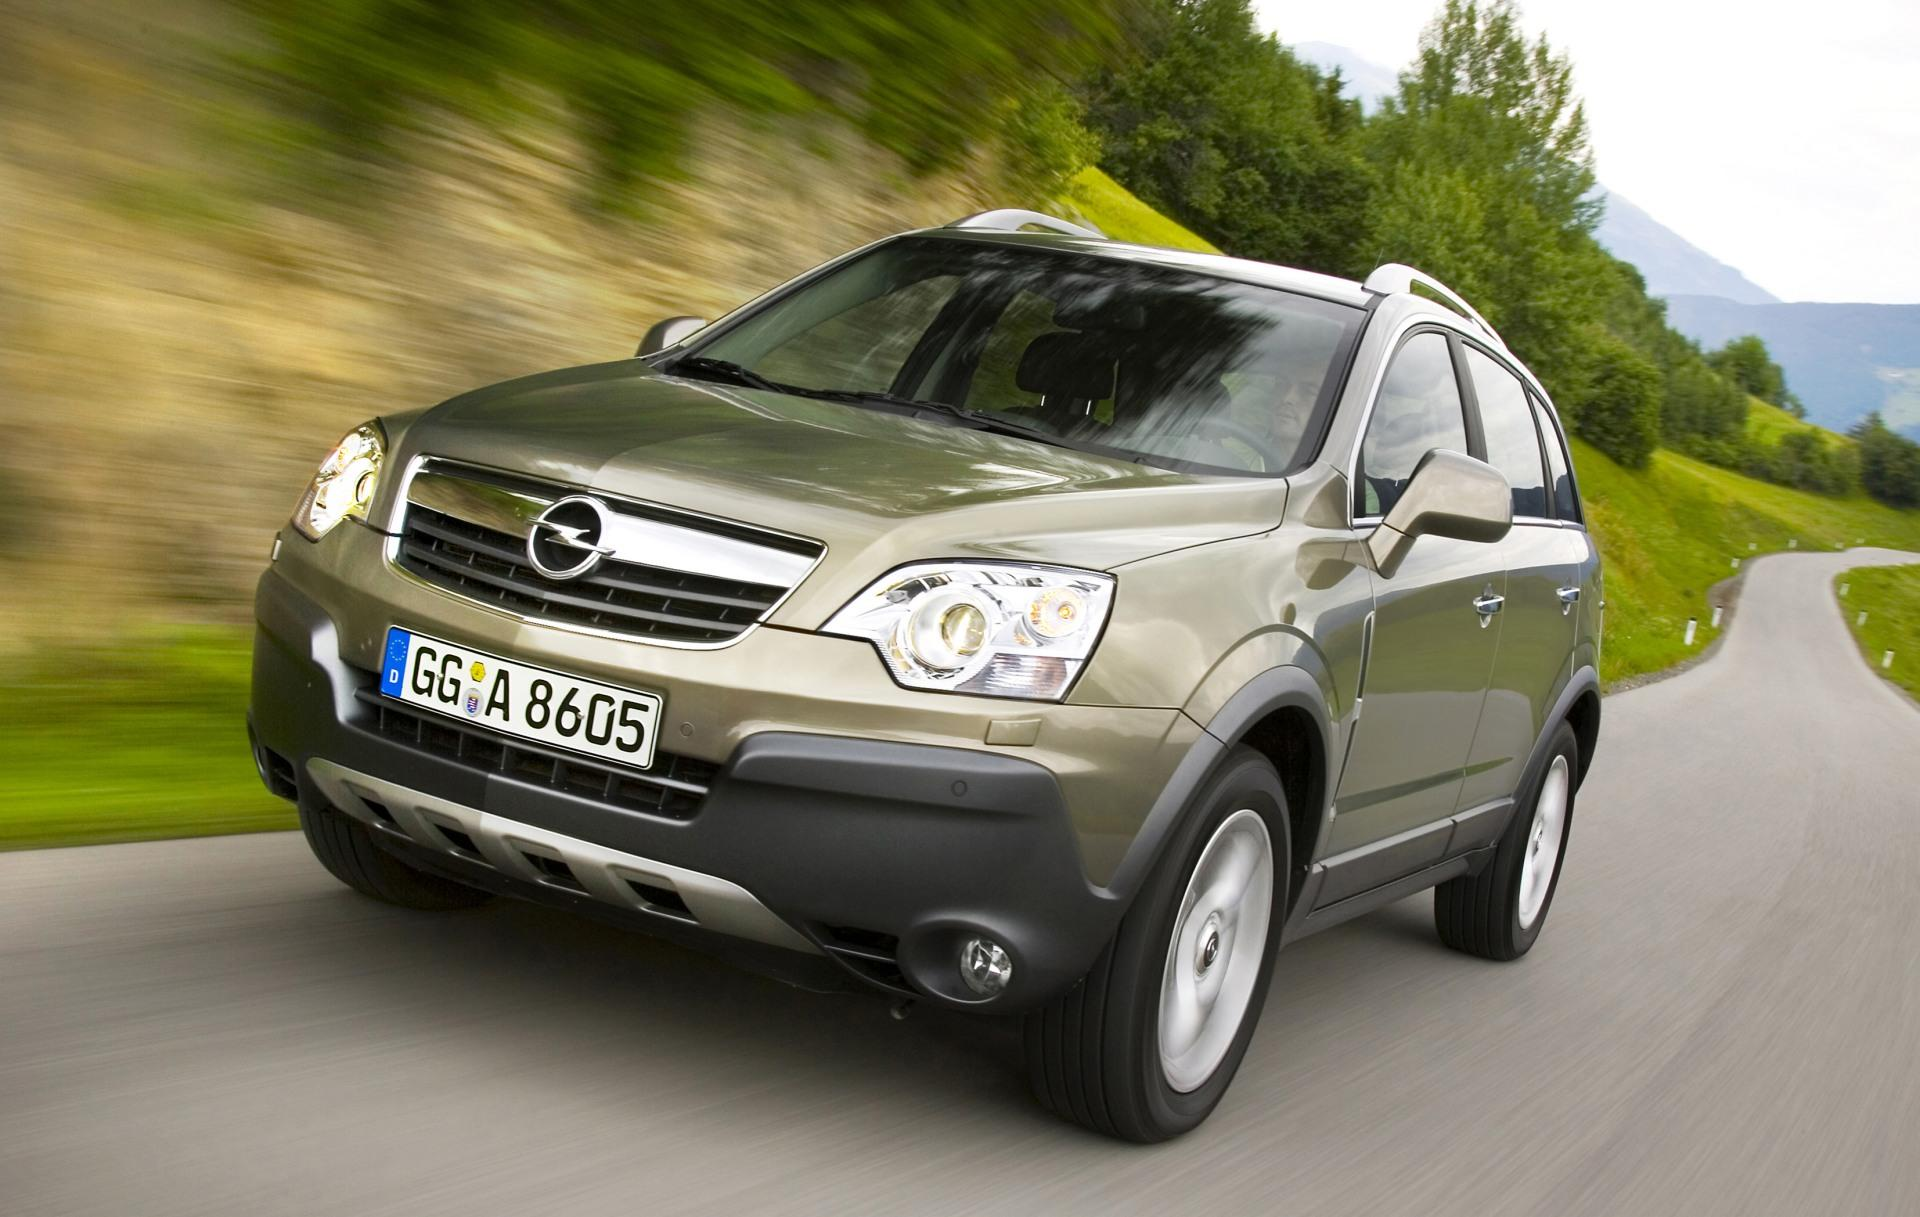 newest cars in 2006 -